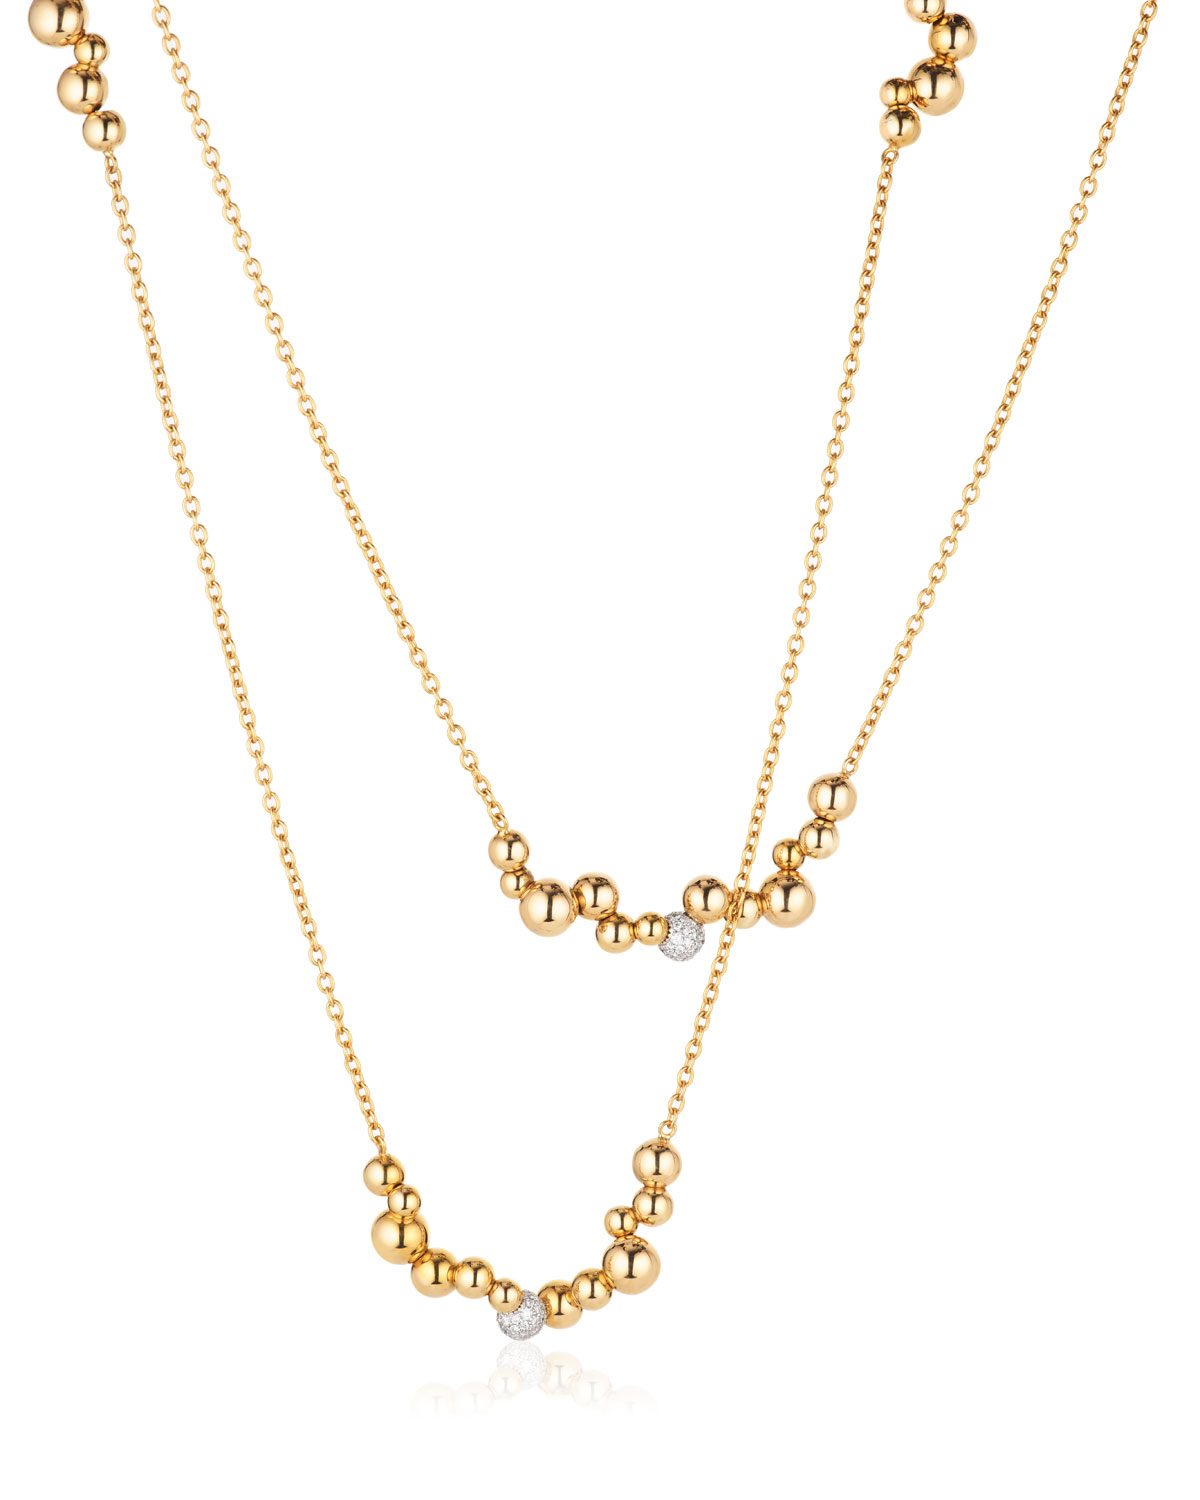 MARINA B Mini Atomo Diamond Necklace In 18K Gold, 42""